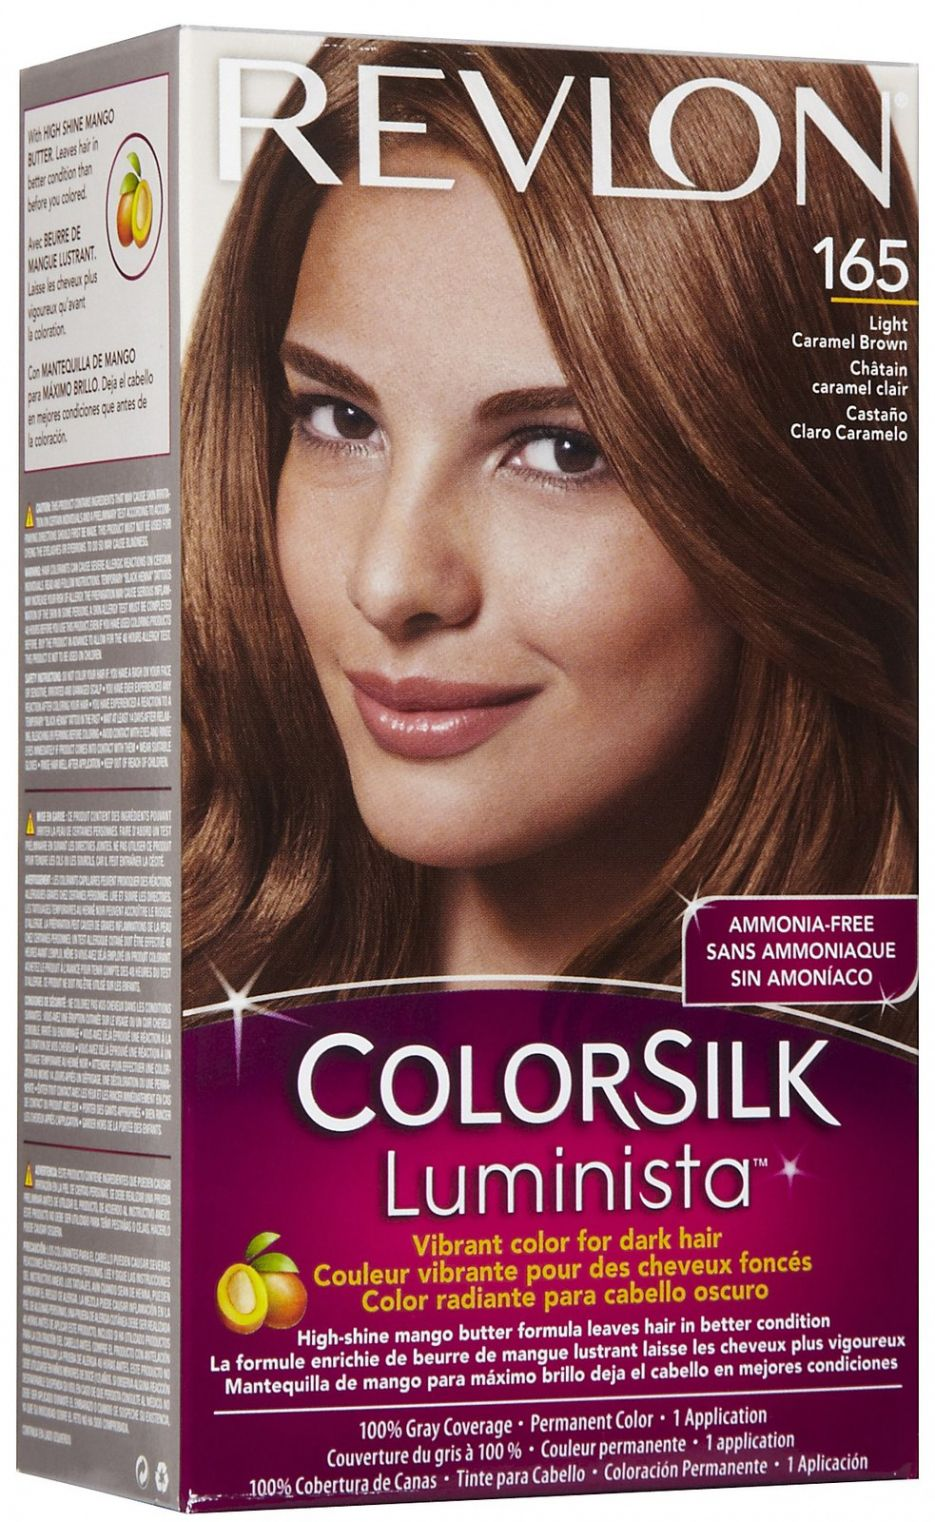 Revlon Light Caramel Brown Hair Color Best Hair Color To Cover